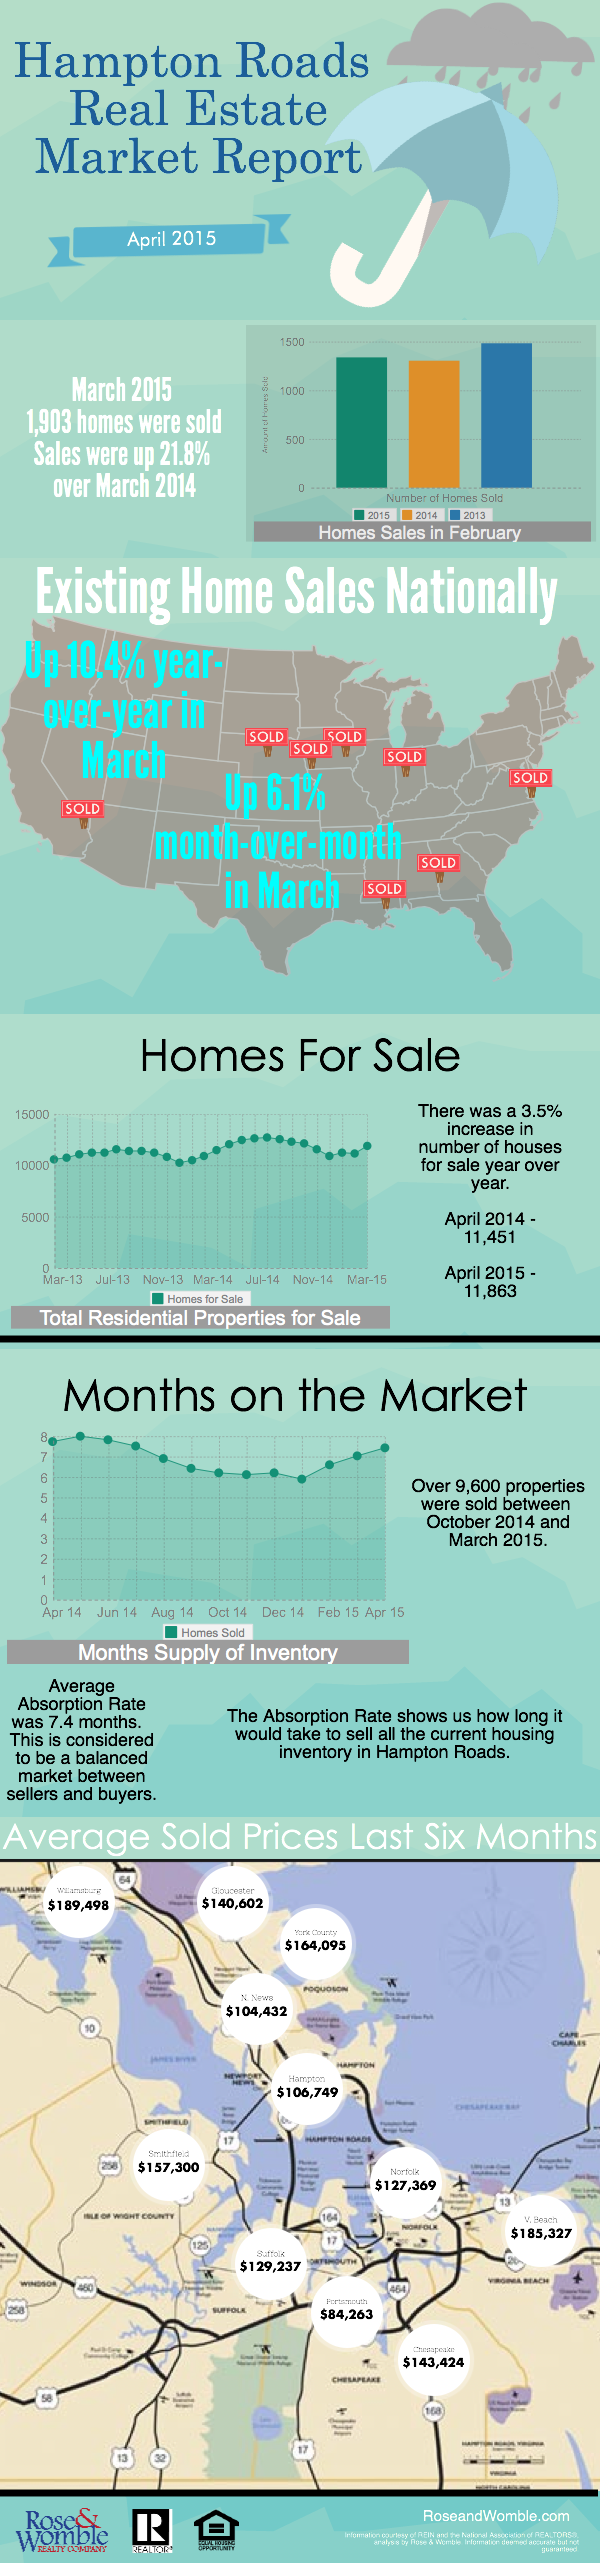 Hampton Roads Real Estate Market Report Infographgic - Rose & Womble